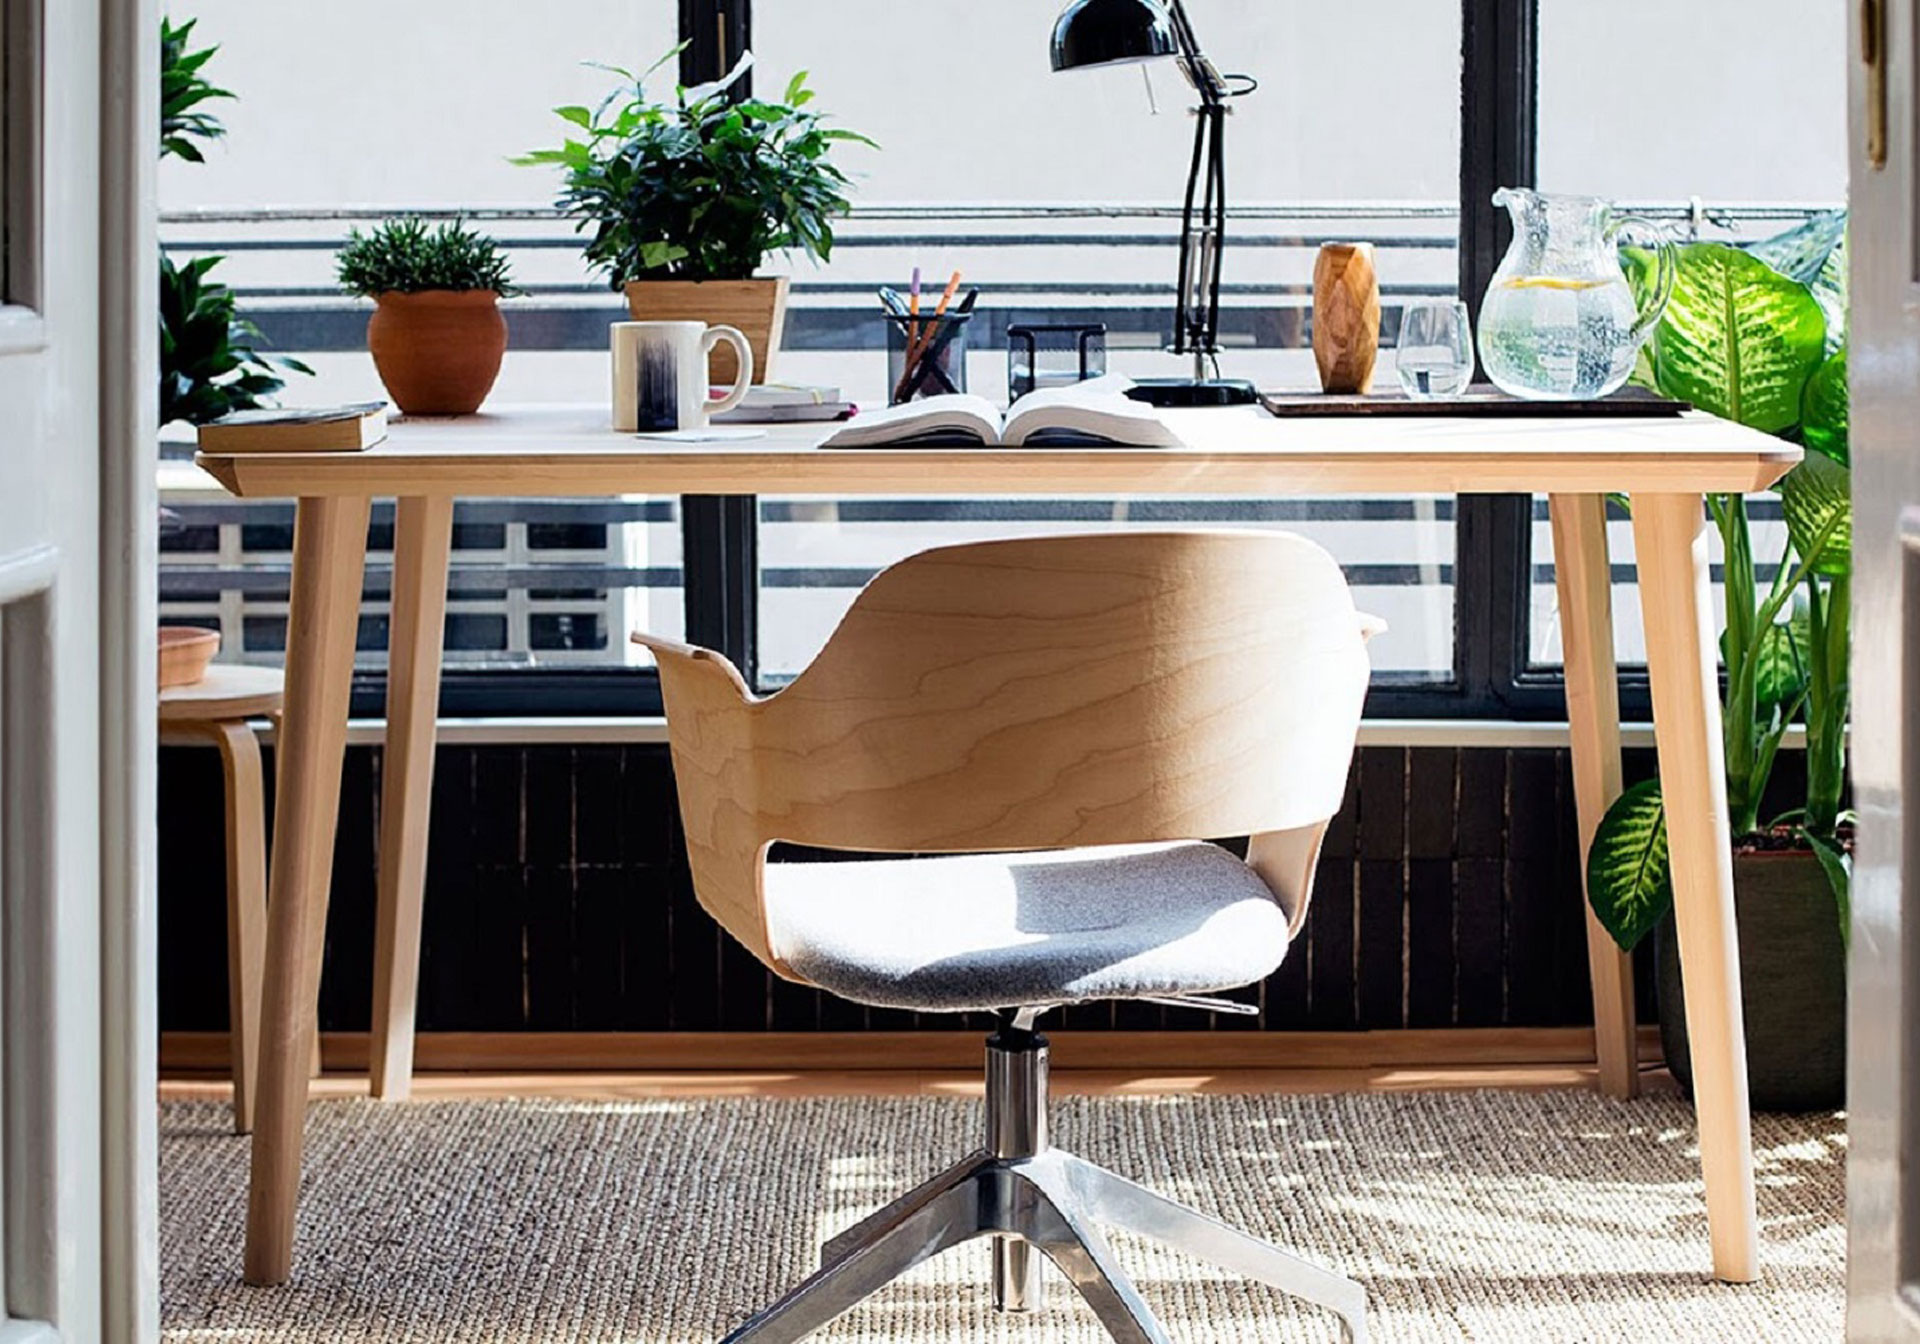 Tweak Your Home Workspace for Better Performance!